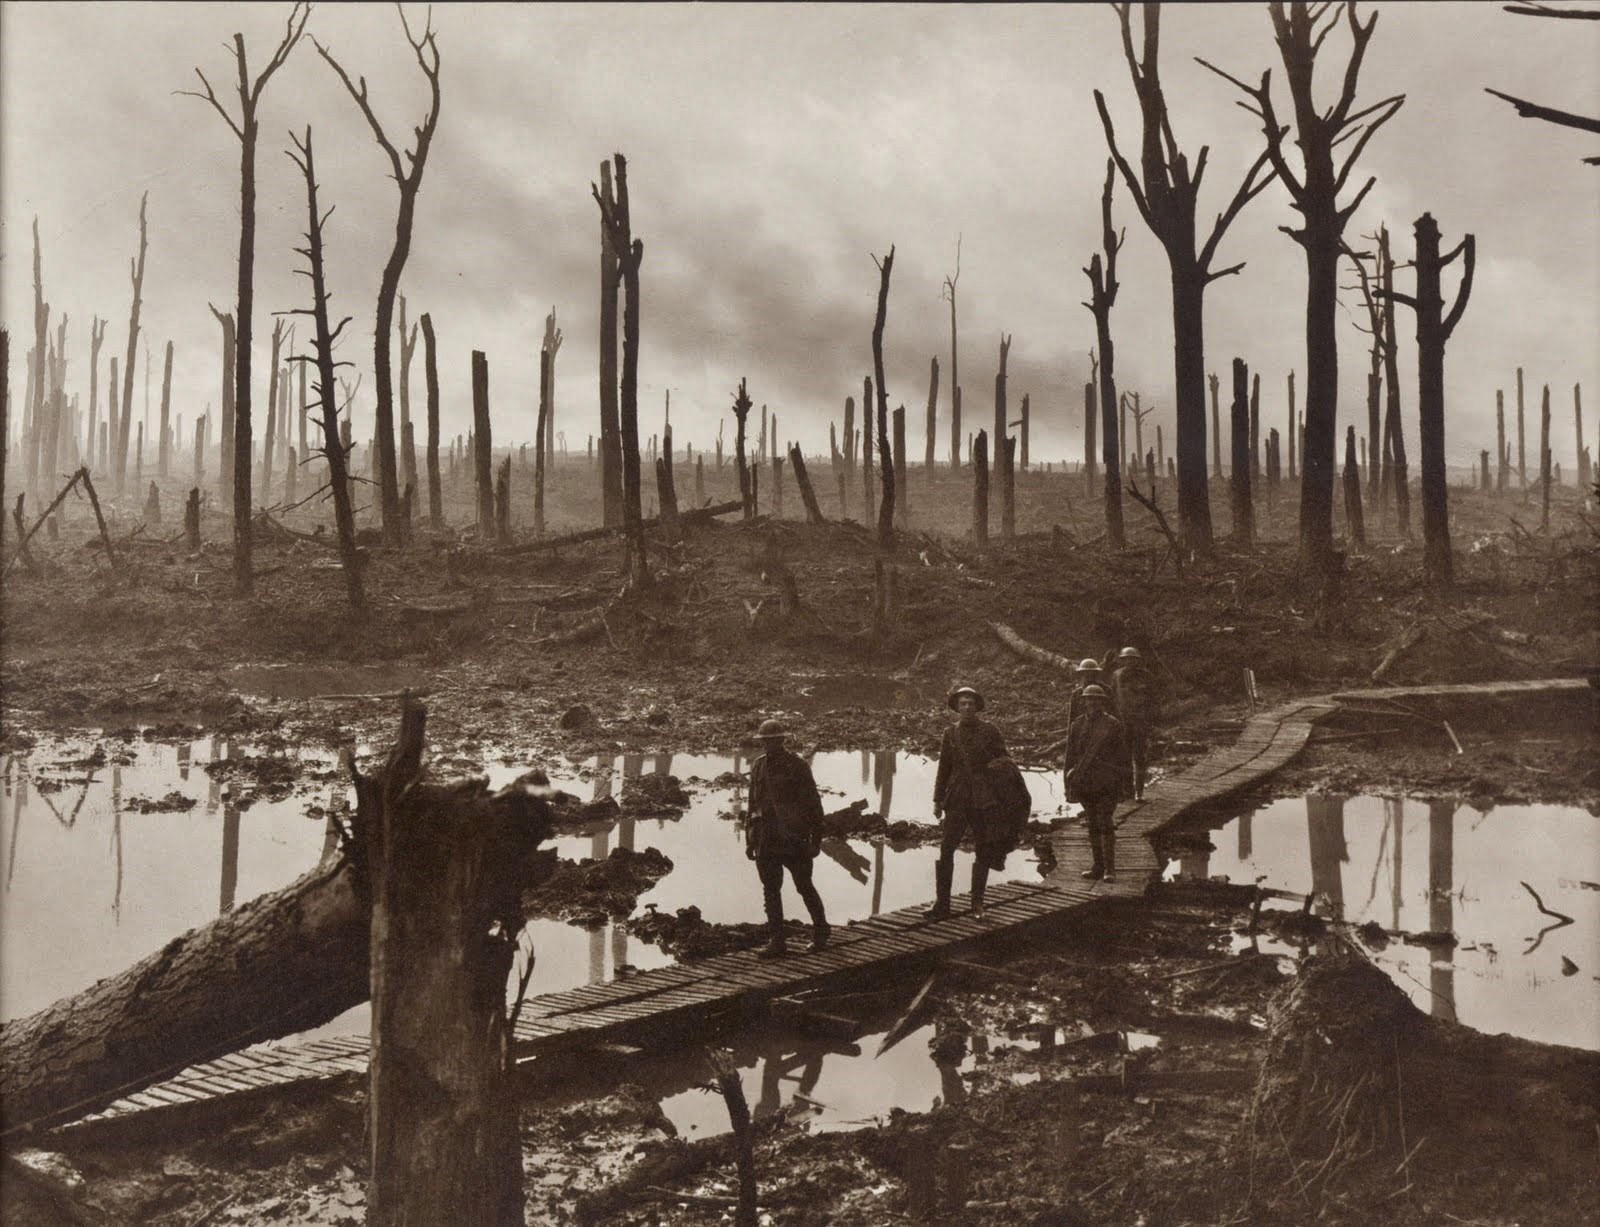 Australian gunners on a duckboard track in Château Wood near Hooge, 29 October 1917. Photo by Frank Hurley. Image: Collection Database of the Australian War Memorial, ID Number: E01220